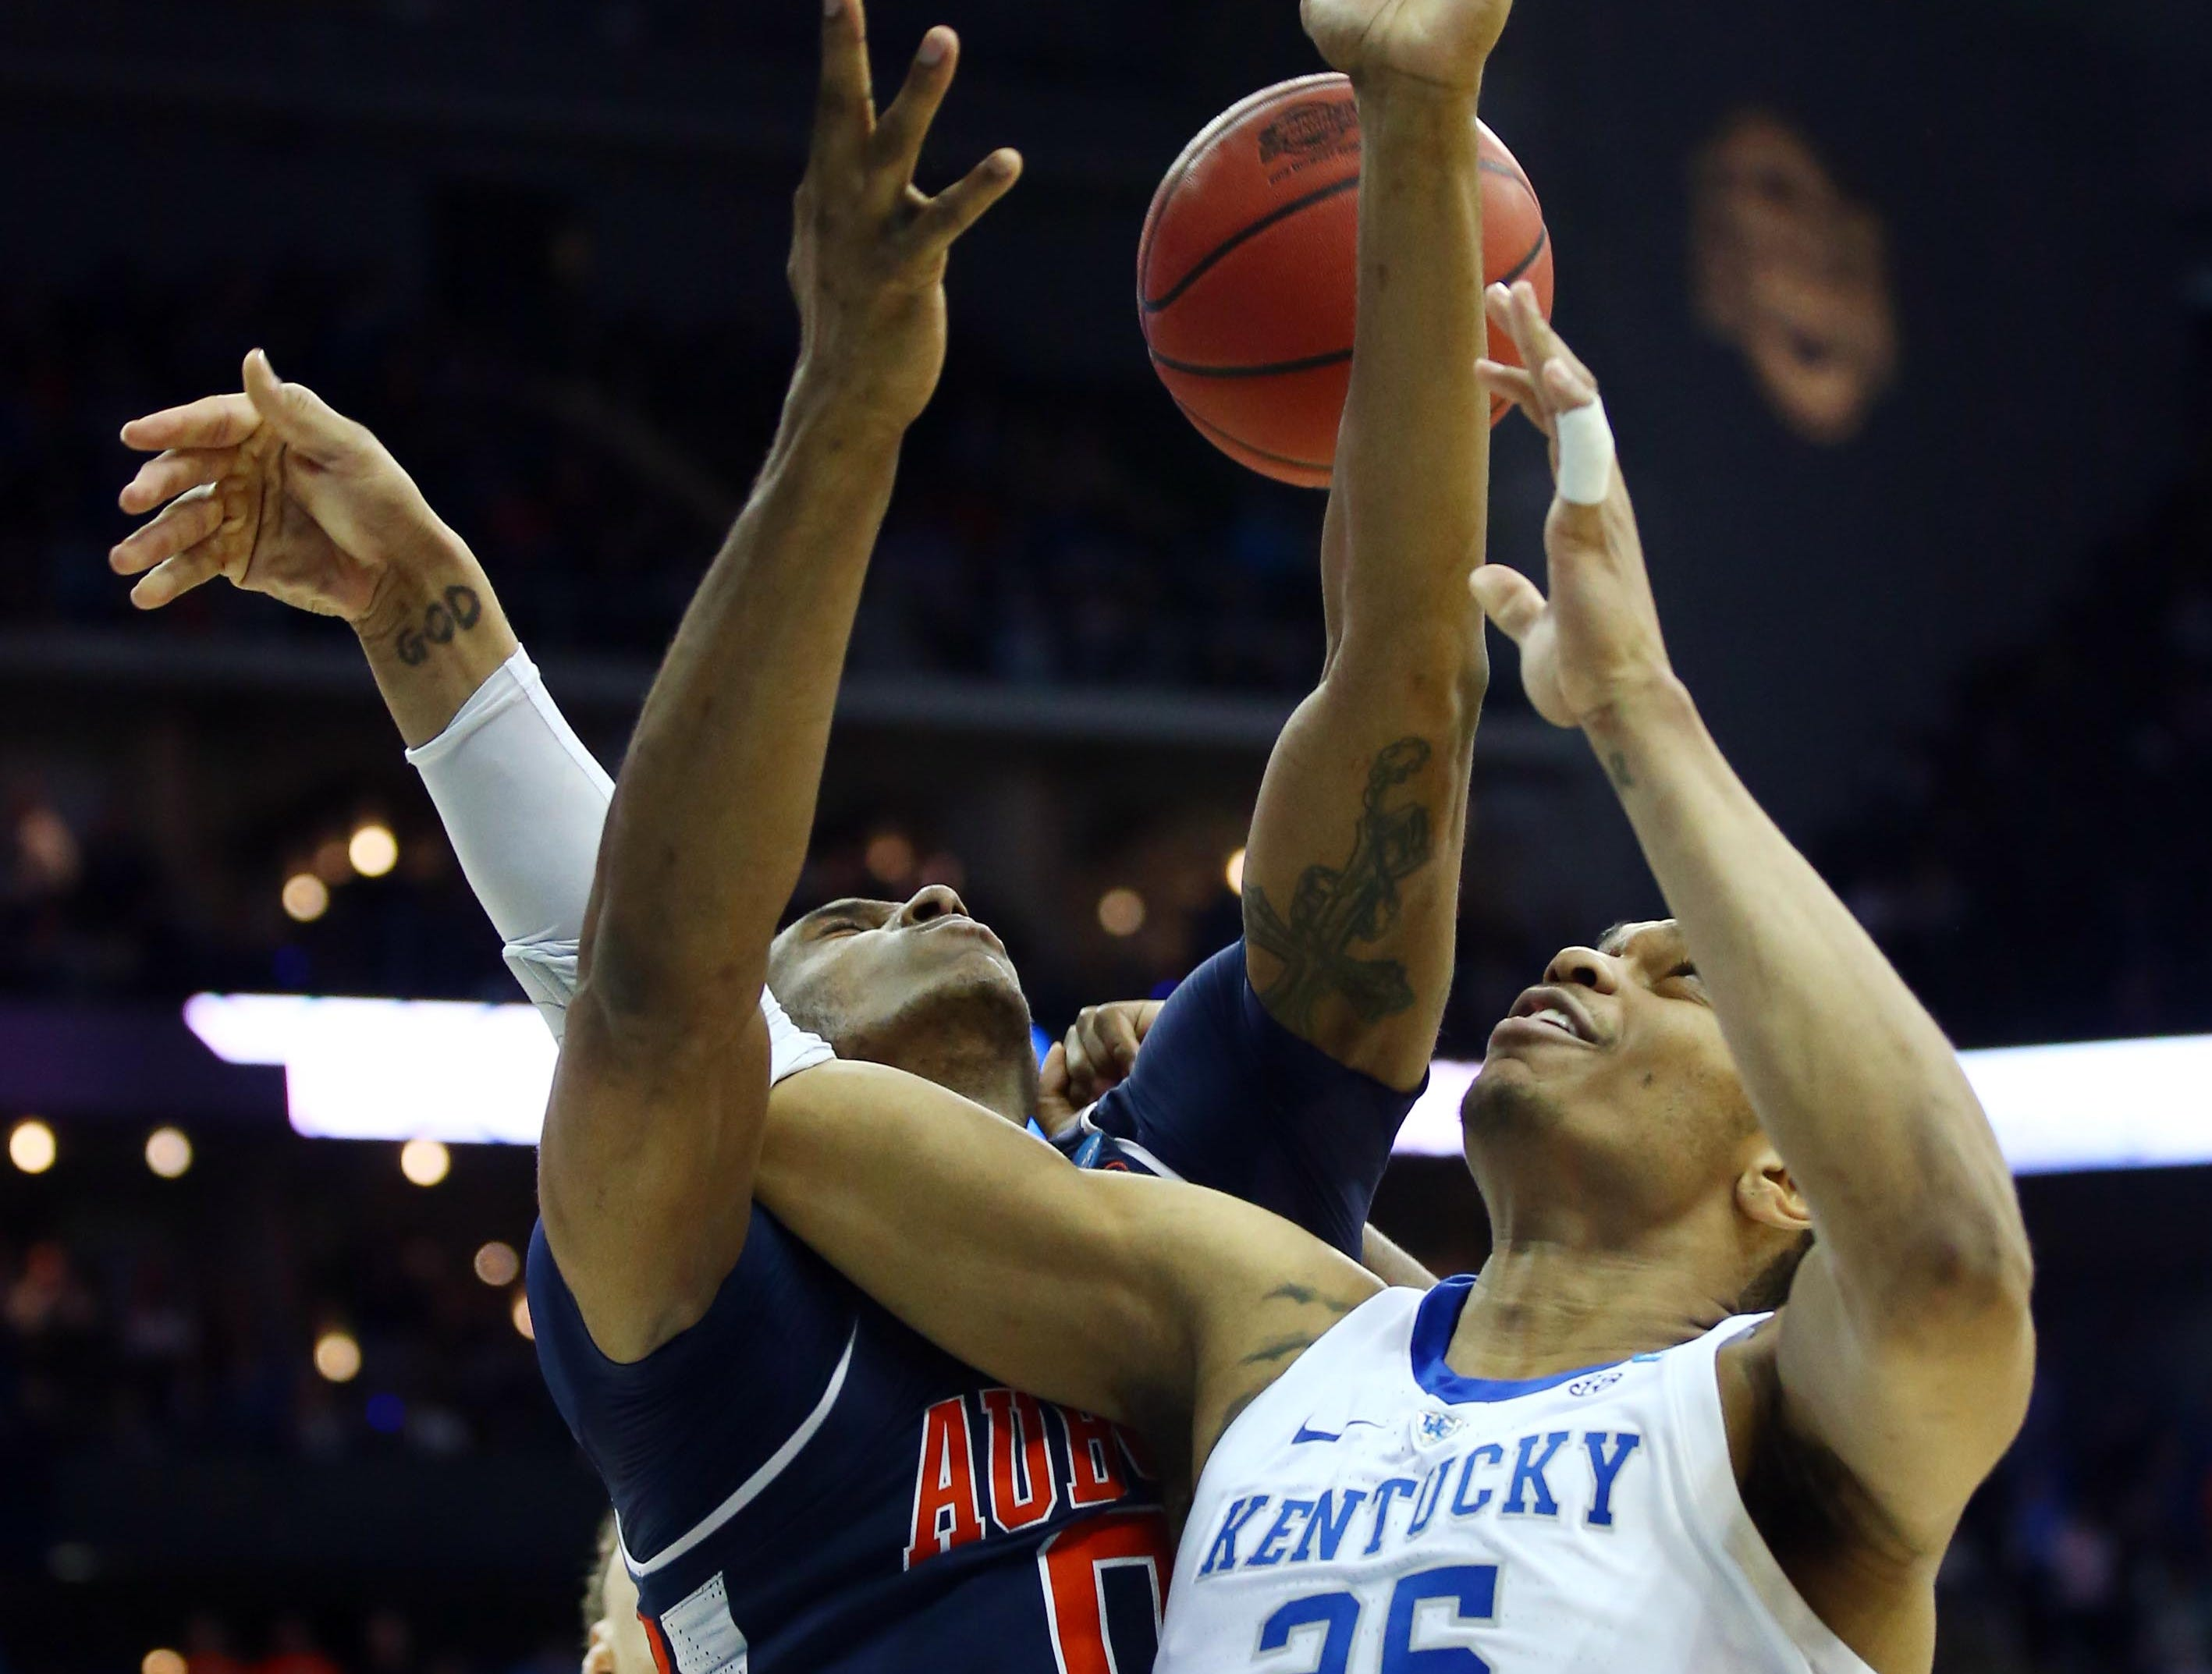 Mar 31, 2019; Kansas City, MO, United States; Kentucky Wildcats forward PJ Washington (25) battles for the ball with Auburn Tigers forward Horace Spencer (0) during the second half in the championship game of the midwest regional of the 2019 NCAA Tournament at Sprint Center. Mandatory Credit: Jay Biggerstaff-USA TODAY Sports